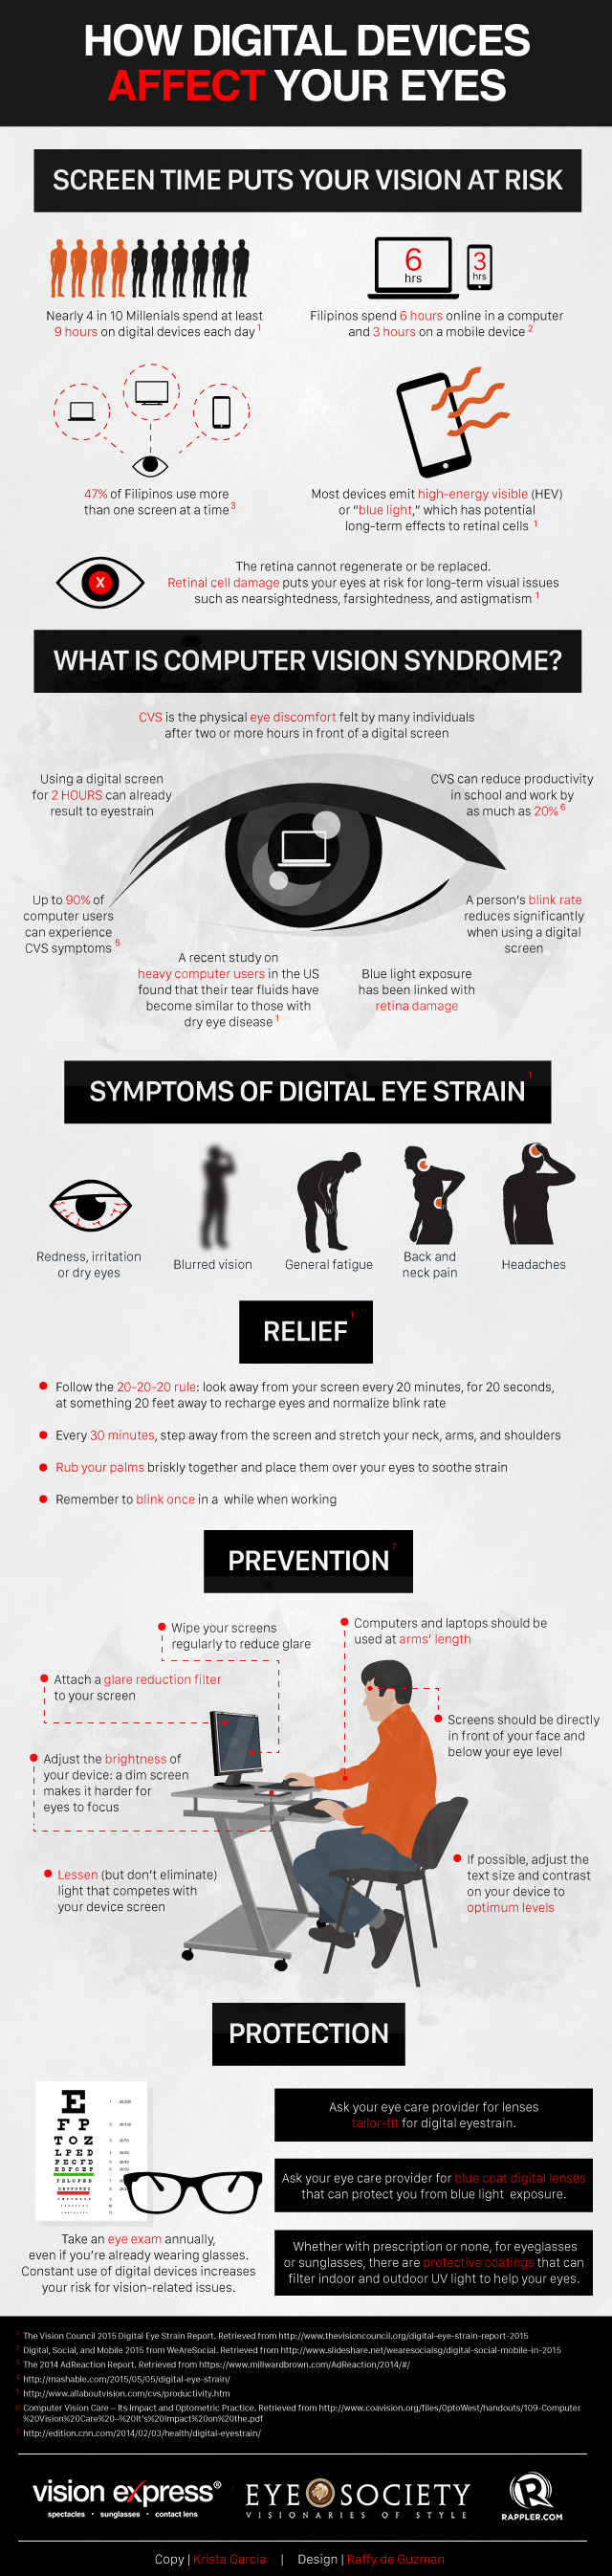 INFOGRAPHIC: How digital devices affect your eyes